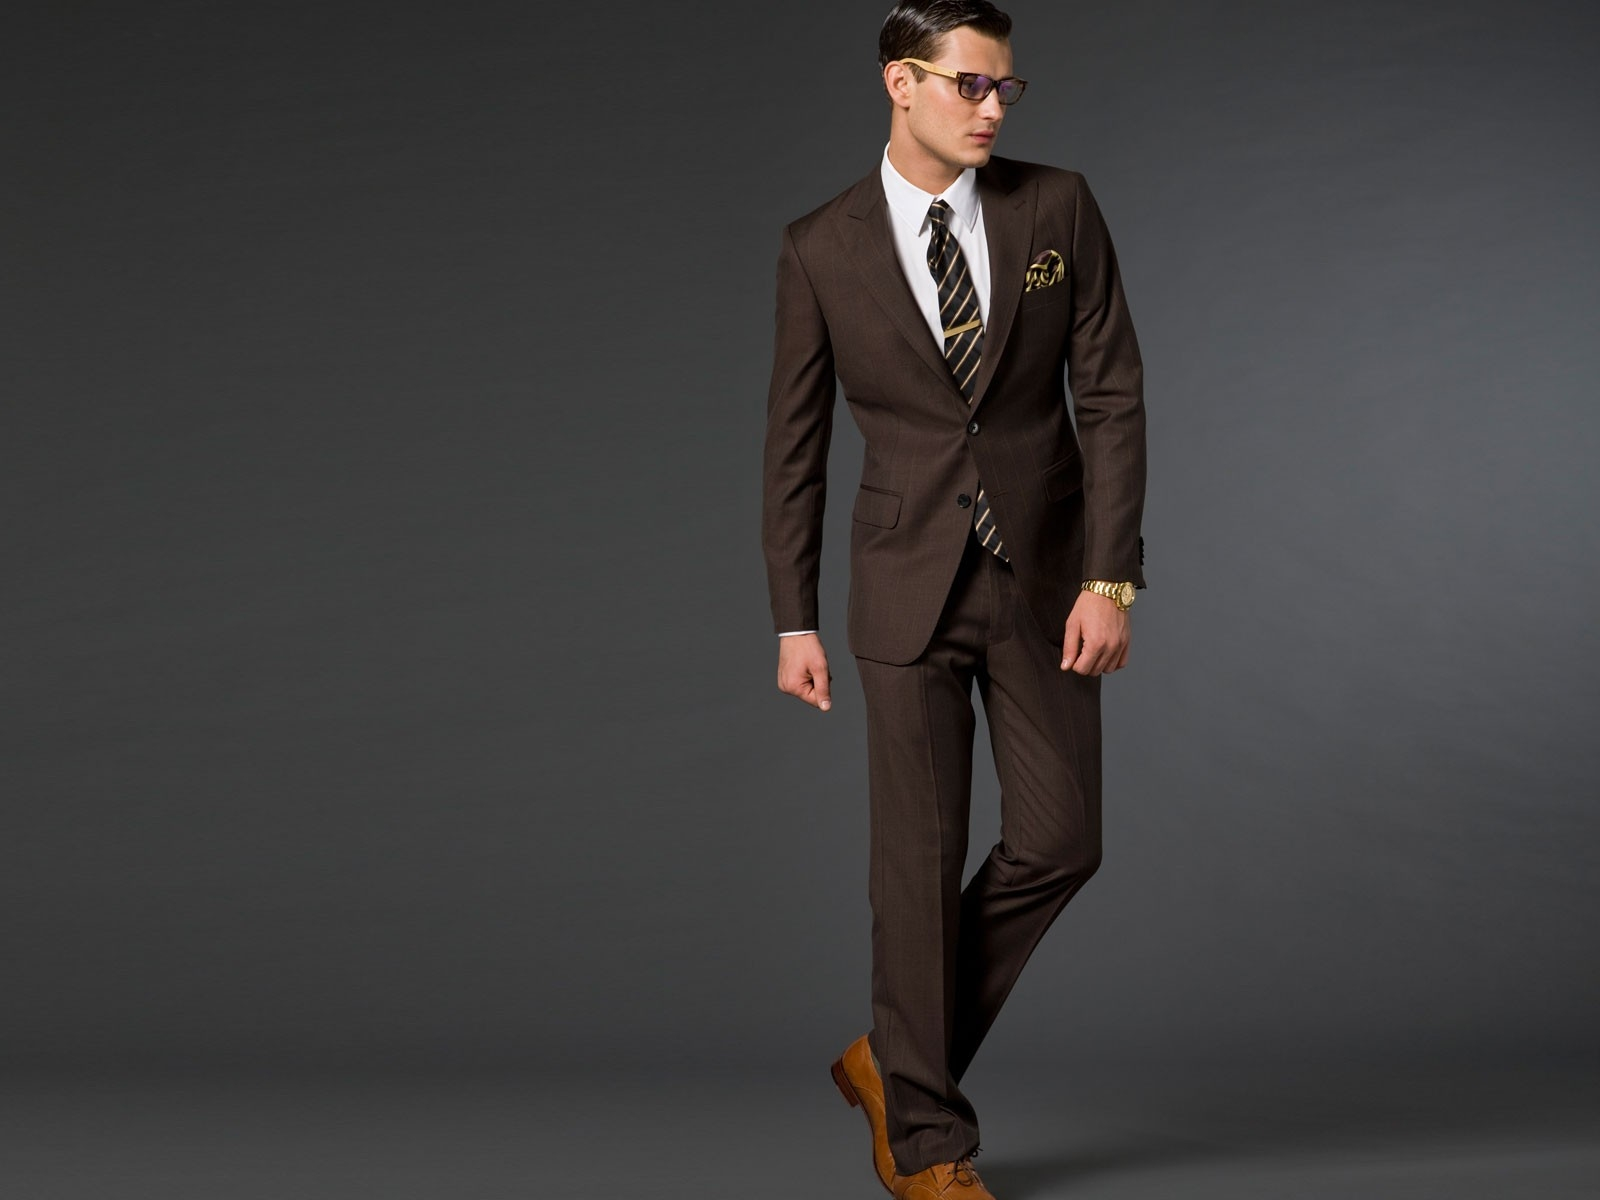 Gray Suit And Brown Shoes